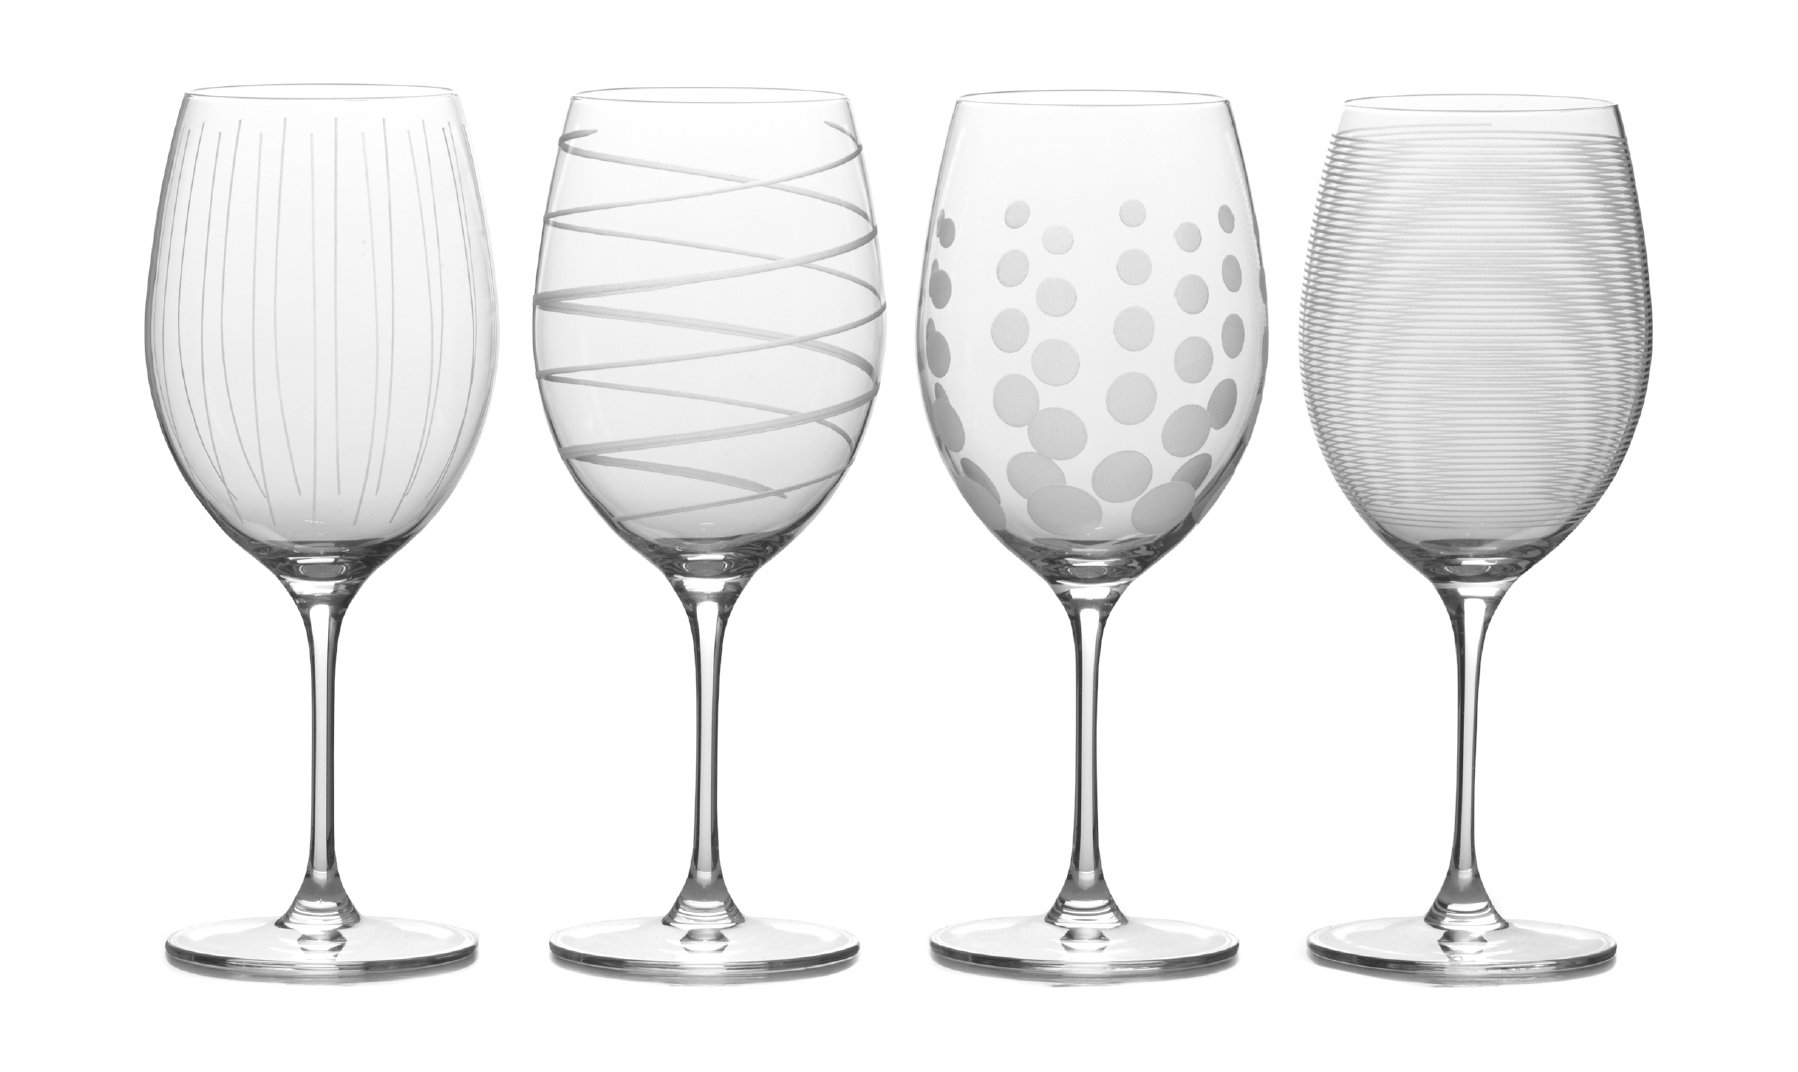 Mikasa Cheers Bordeaux Red Wine Glass, 24-Ounce, Set of 4